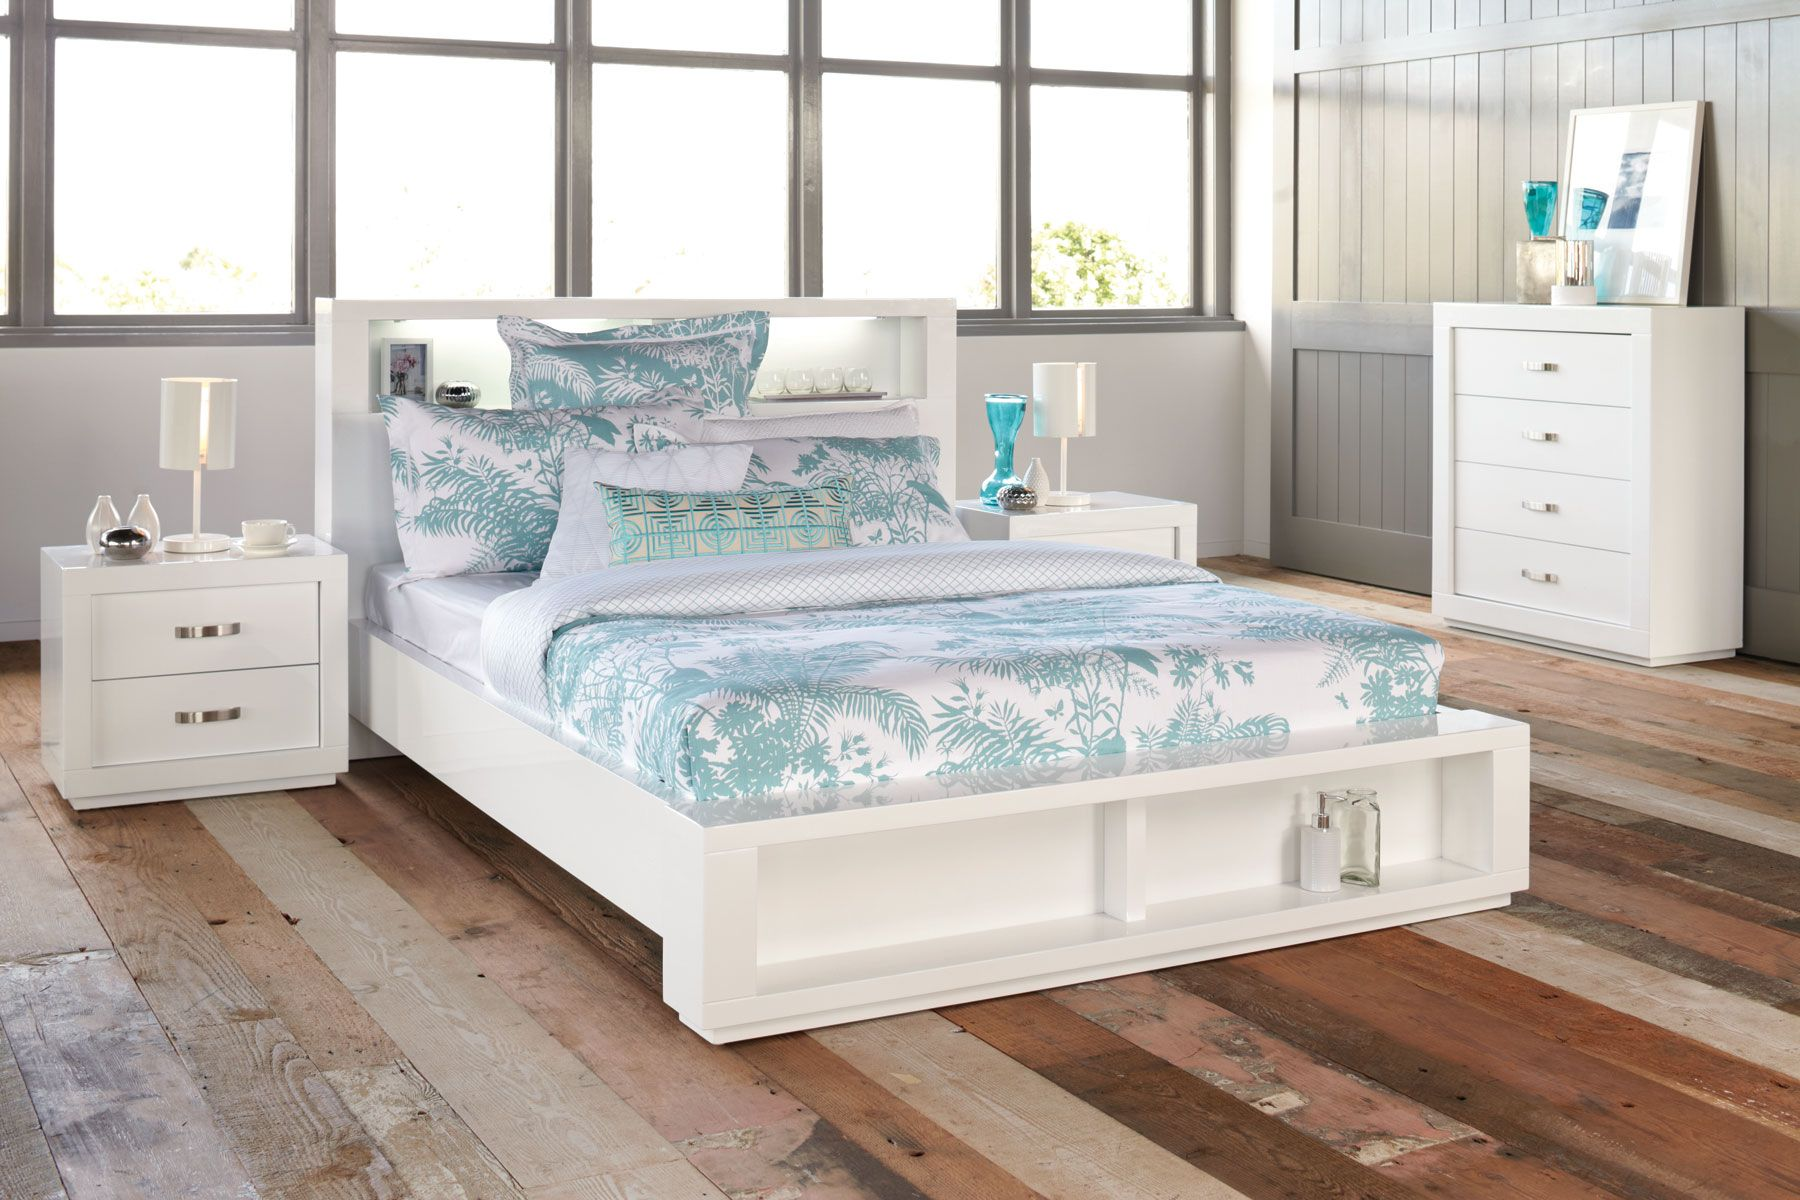 Outstanding white lacquer solid oak wood harvey norman for Affordable quality bedroom furniture